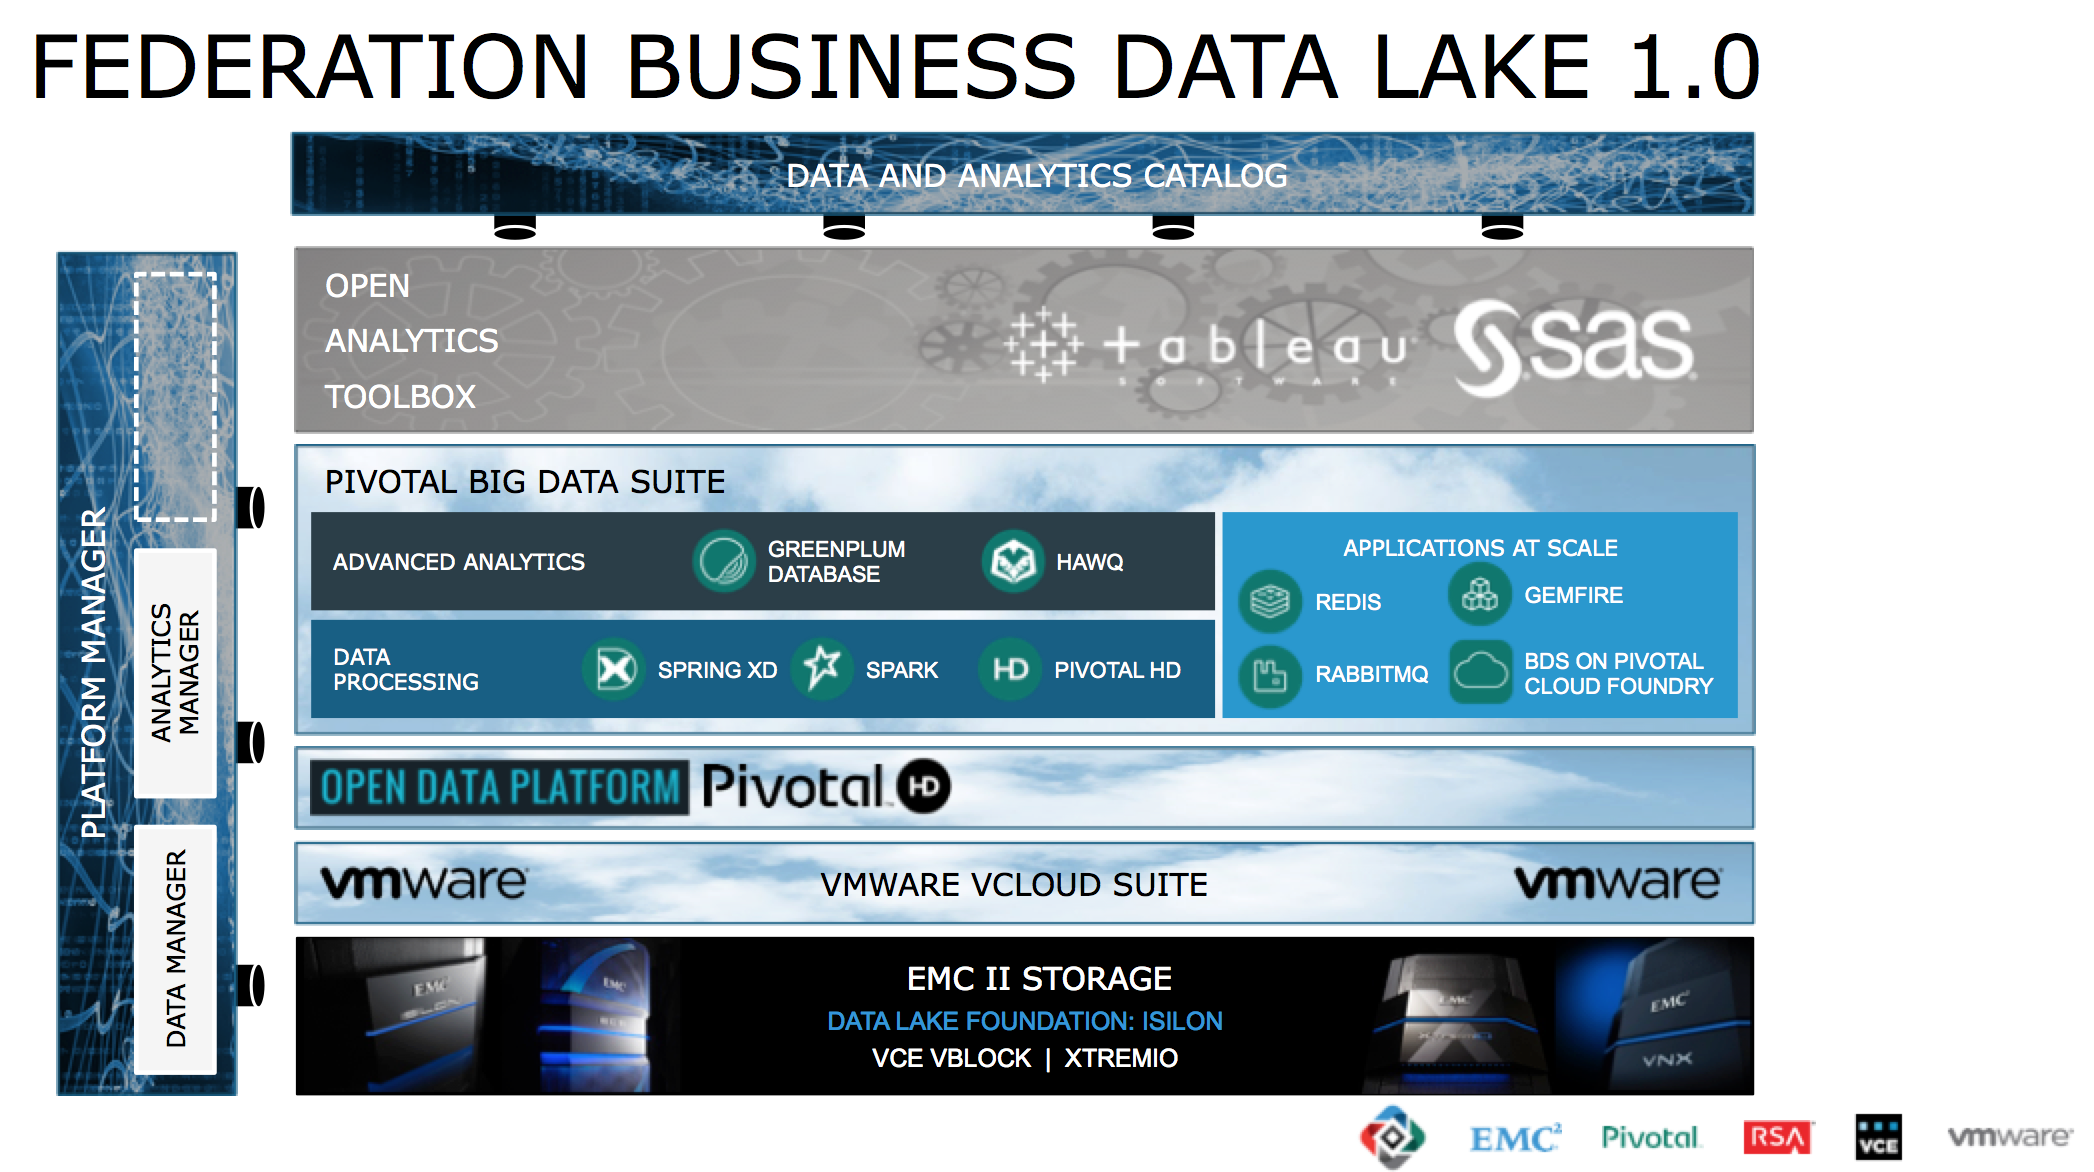 Federation Business Data Lake